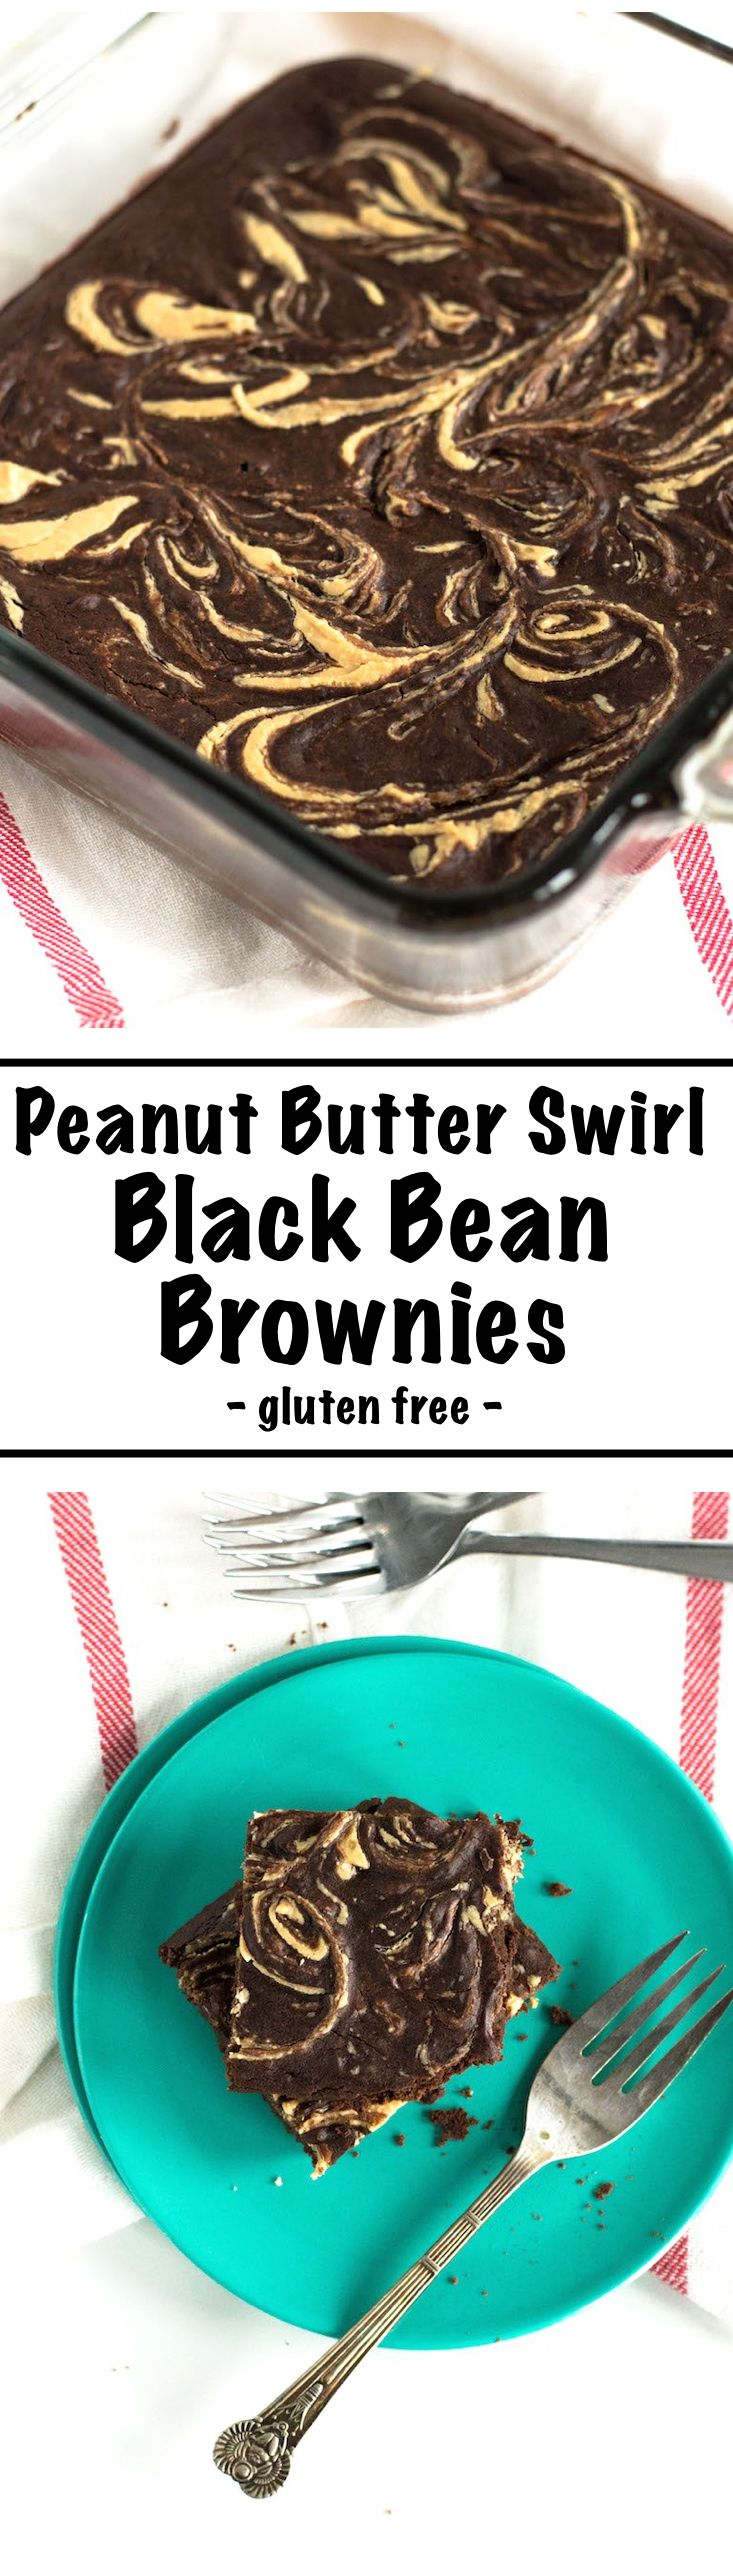 Peanut Butter Swirl Black Bean Brownies | This Black Bean Brownies recipe is easy to make and made completely gluten free with black beans instead of flours and are beautifully swirled with natural peanut butter. Click for the easy recipe! | nourishedtheb